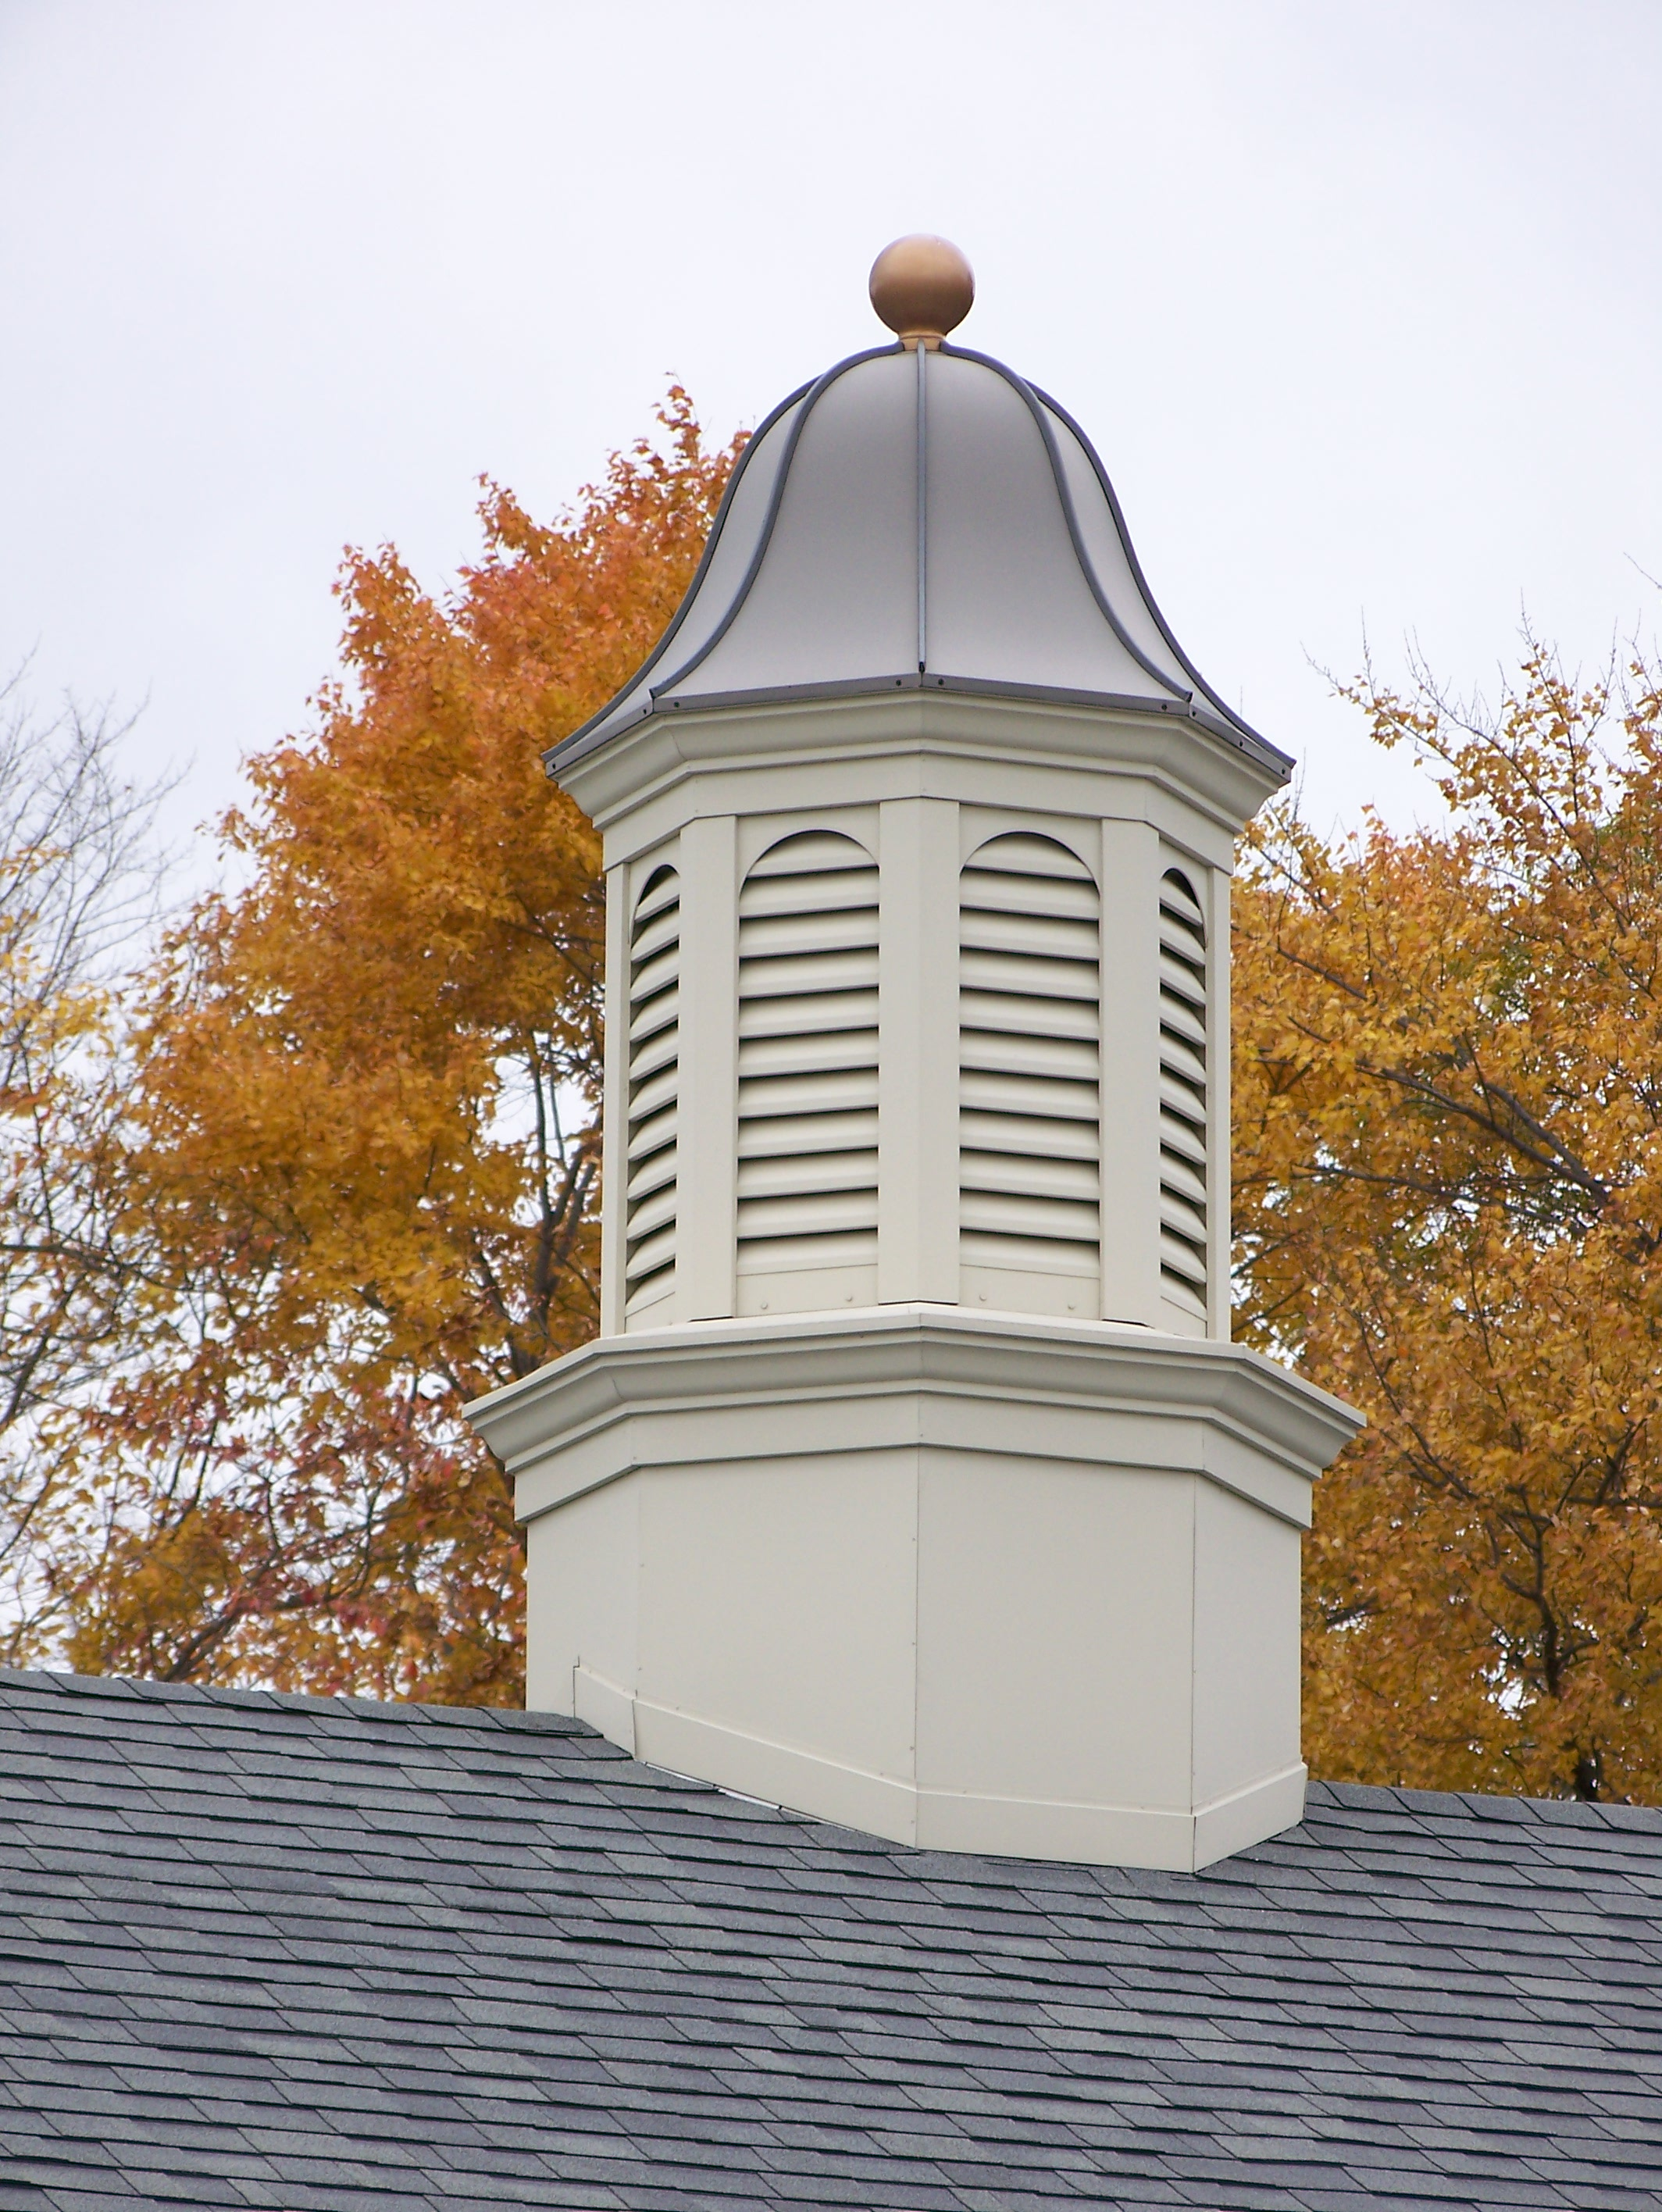 Octagonal Cupola Model 8401 With Louvers And Spire